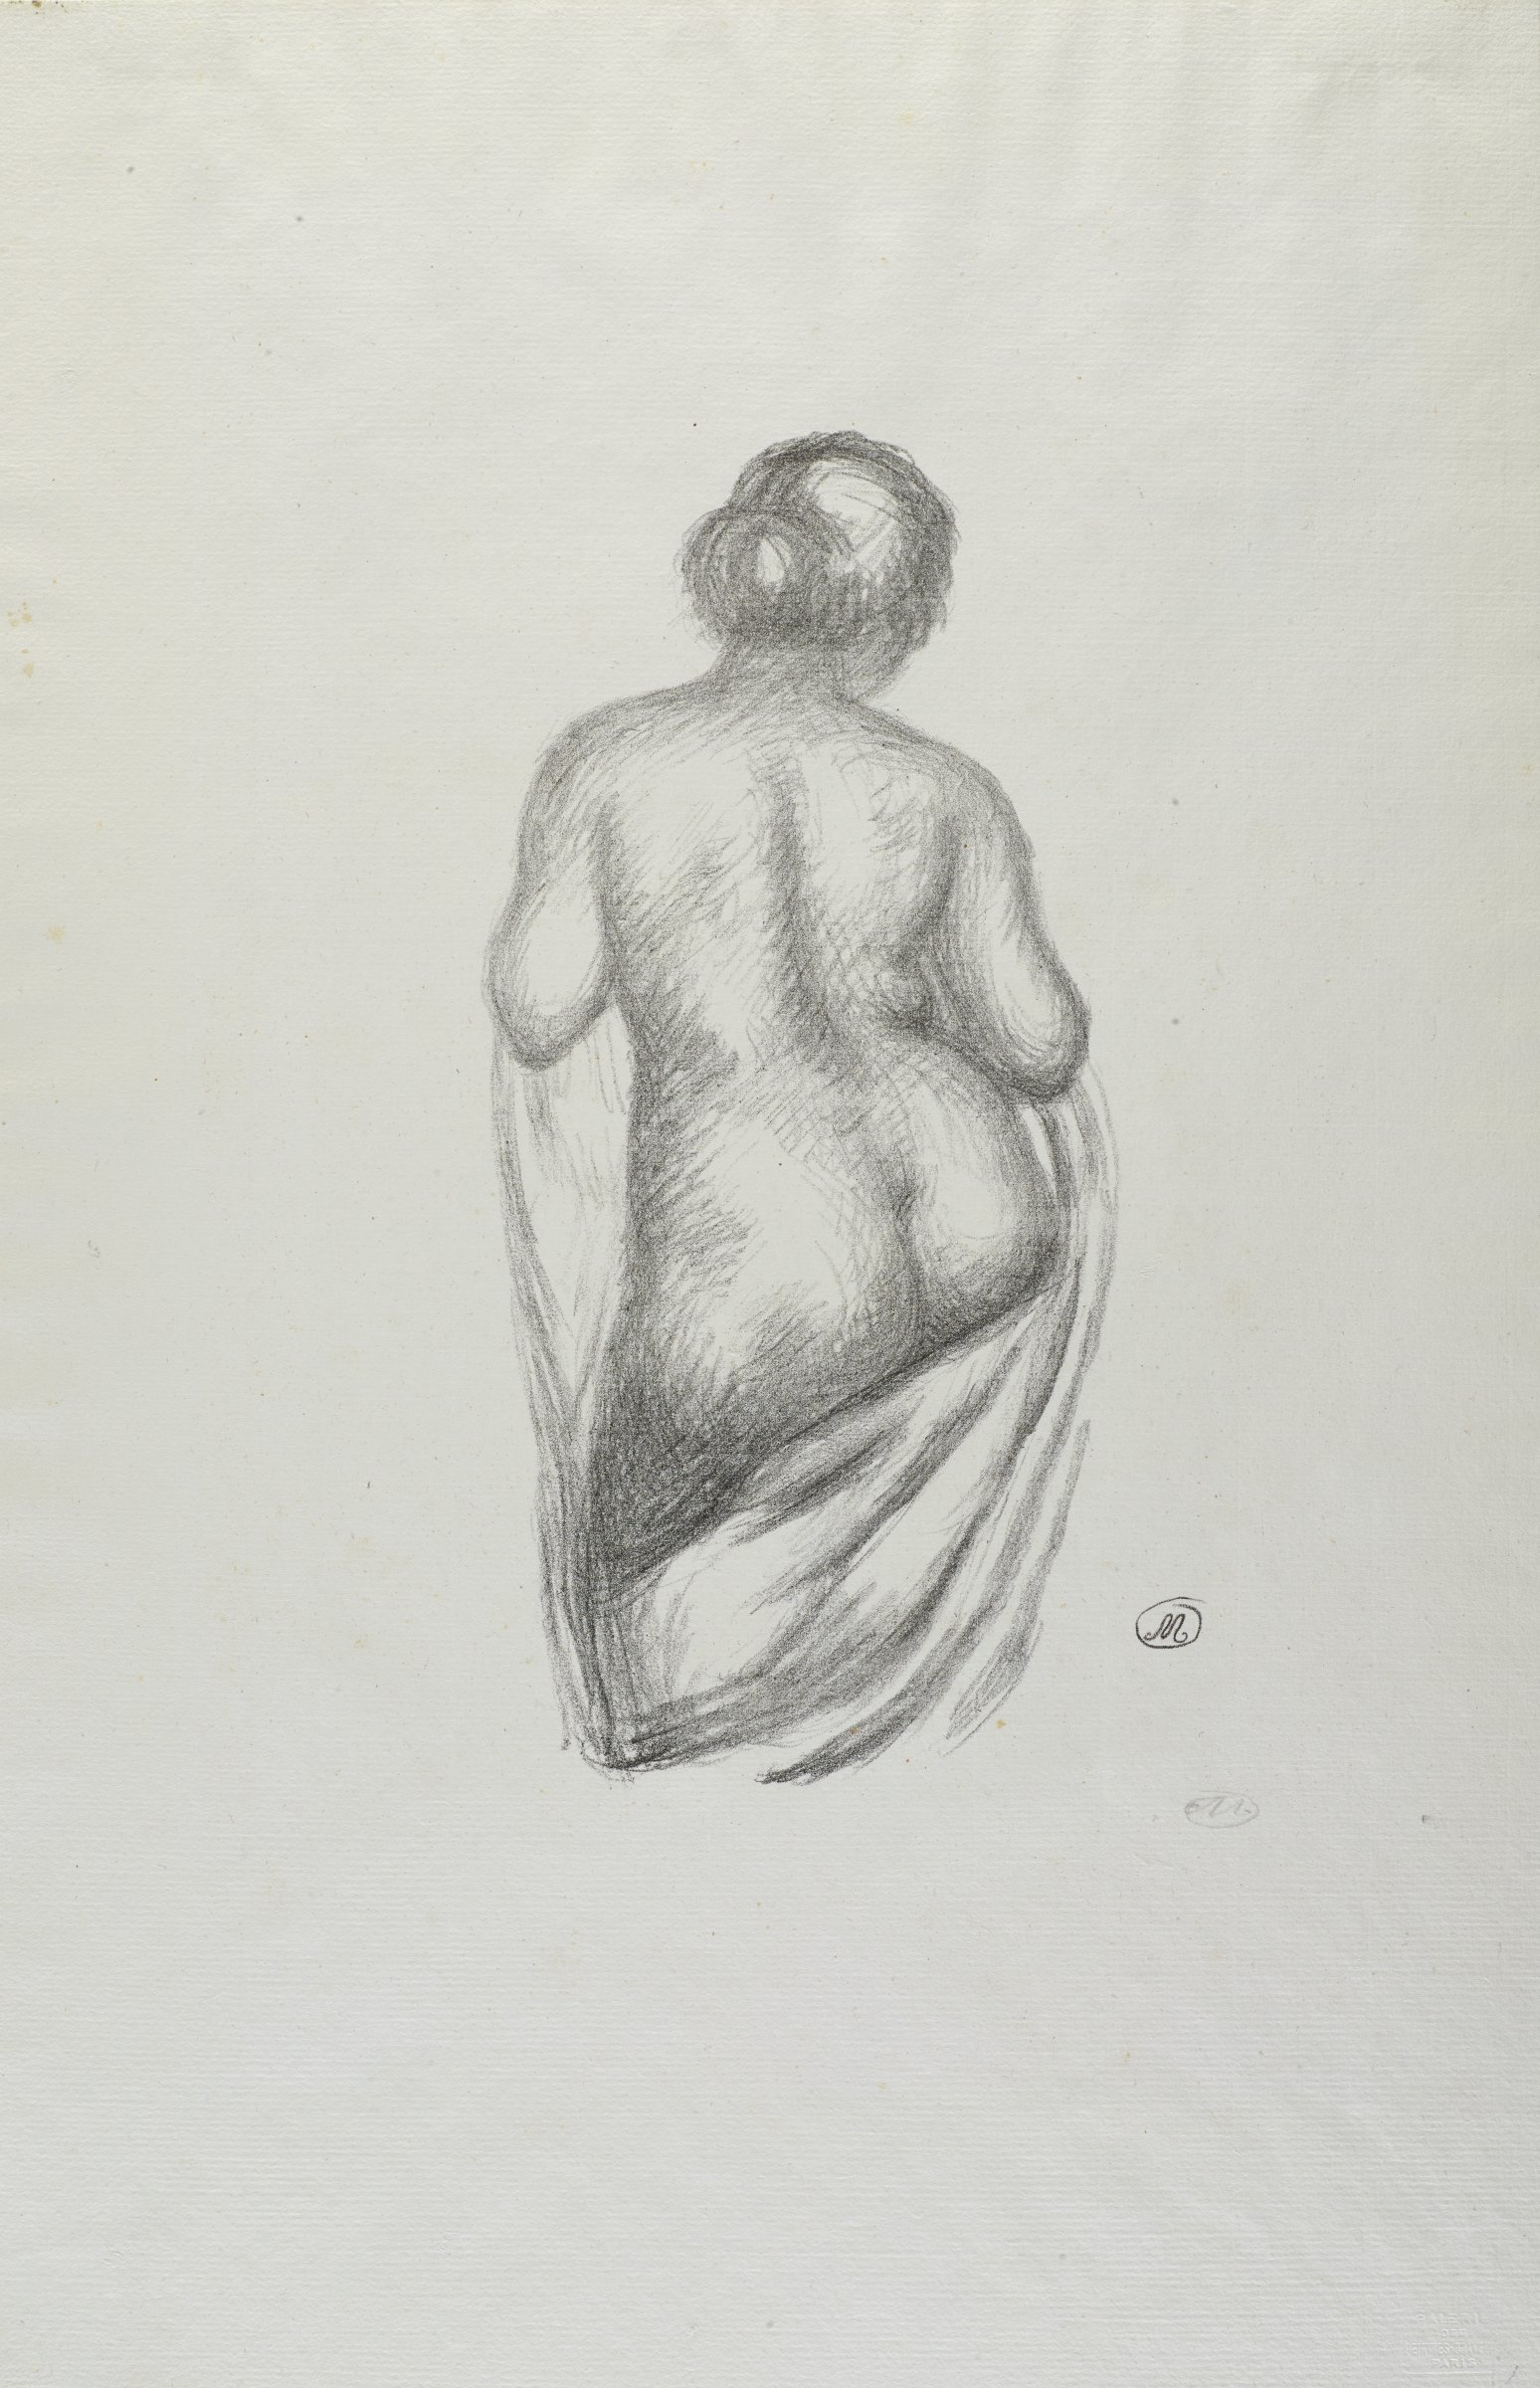 Three quarter length woman seen from behind, weight on right leg. Arms bent to hold drapery in front; drapery falls from the front to under buttocks. Hair in a bun.